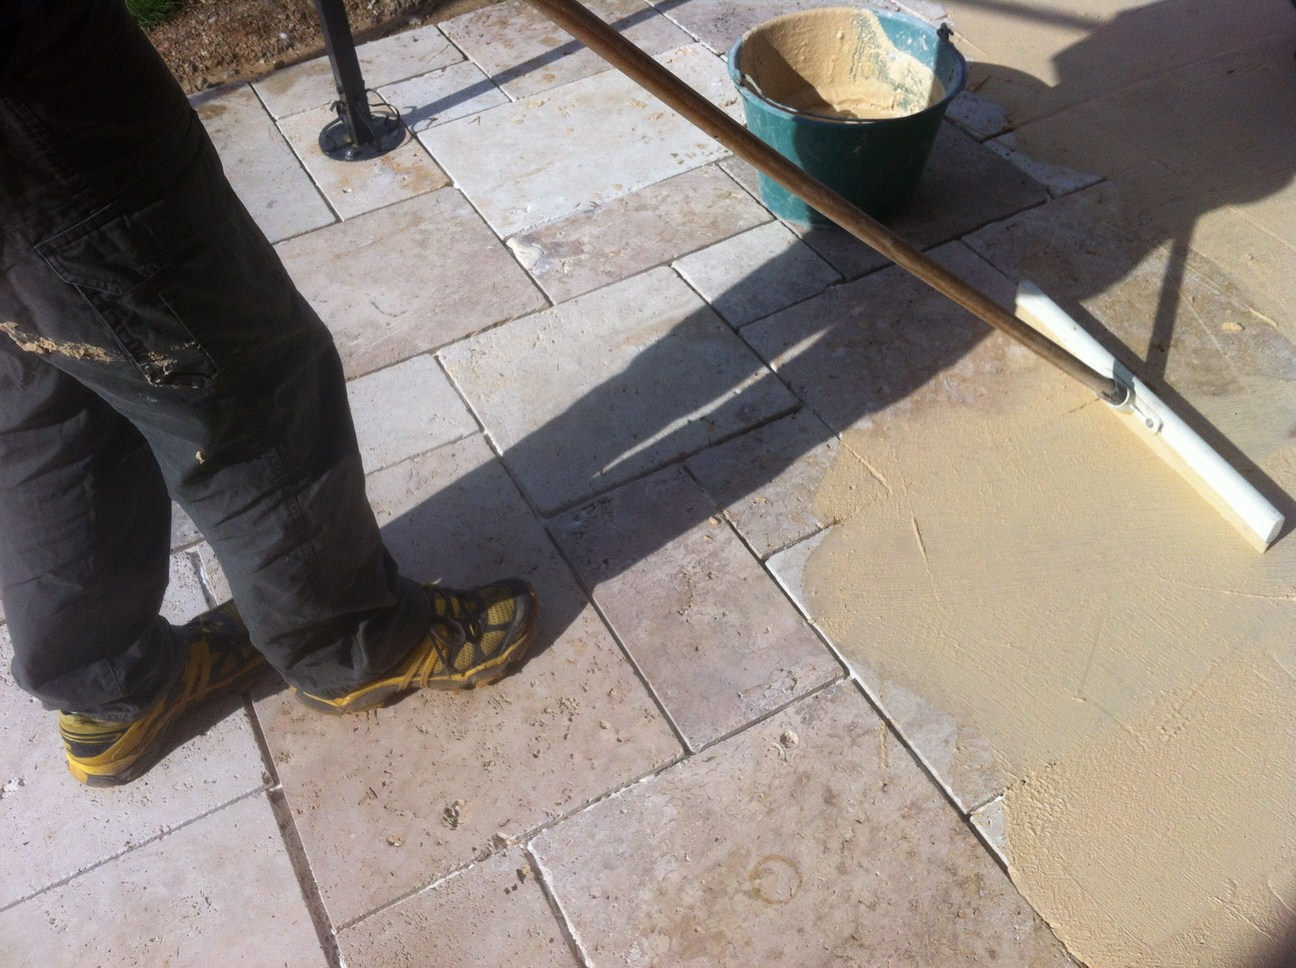 Blog As De Carreaux: Tutoriel De Pose Dallage En Travertin Petit Opus  Multi Format Sur Terrasse Extérieure